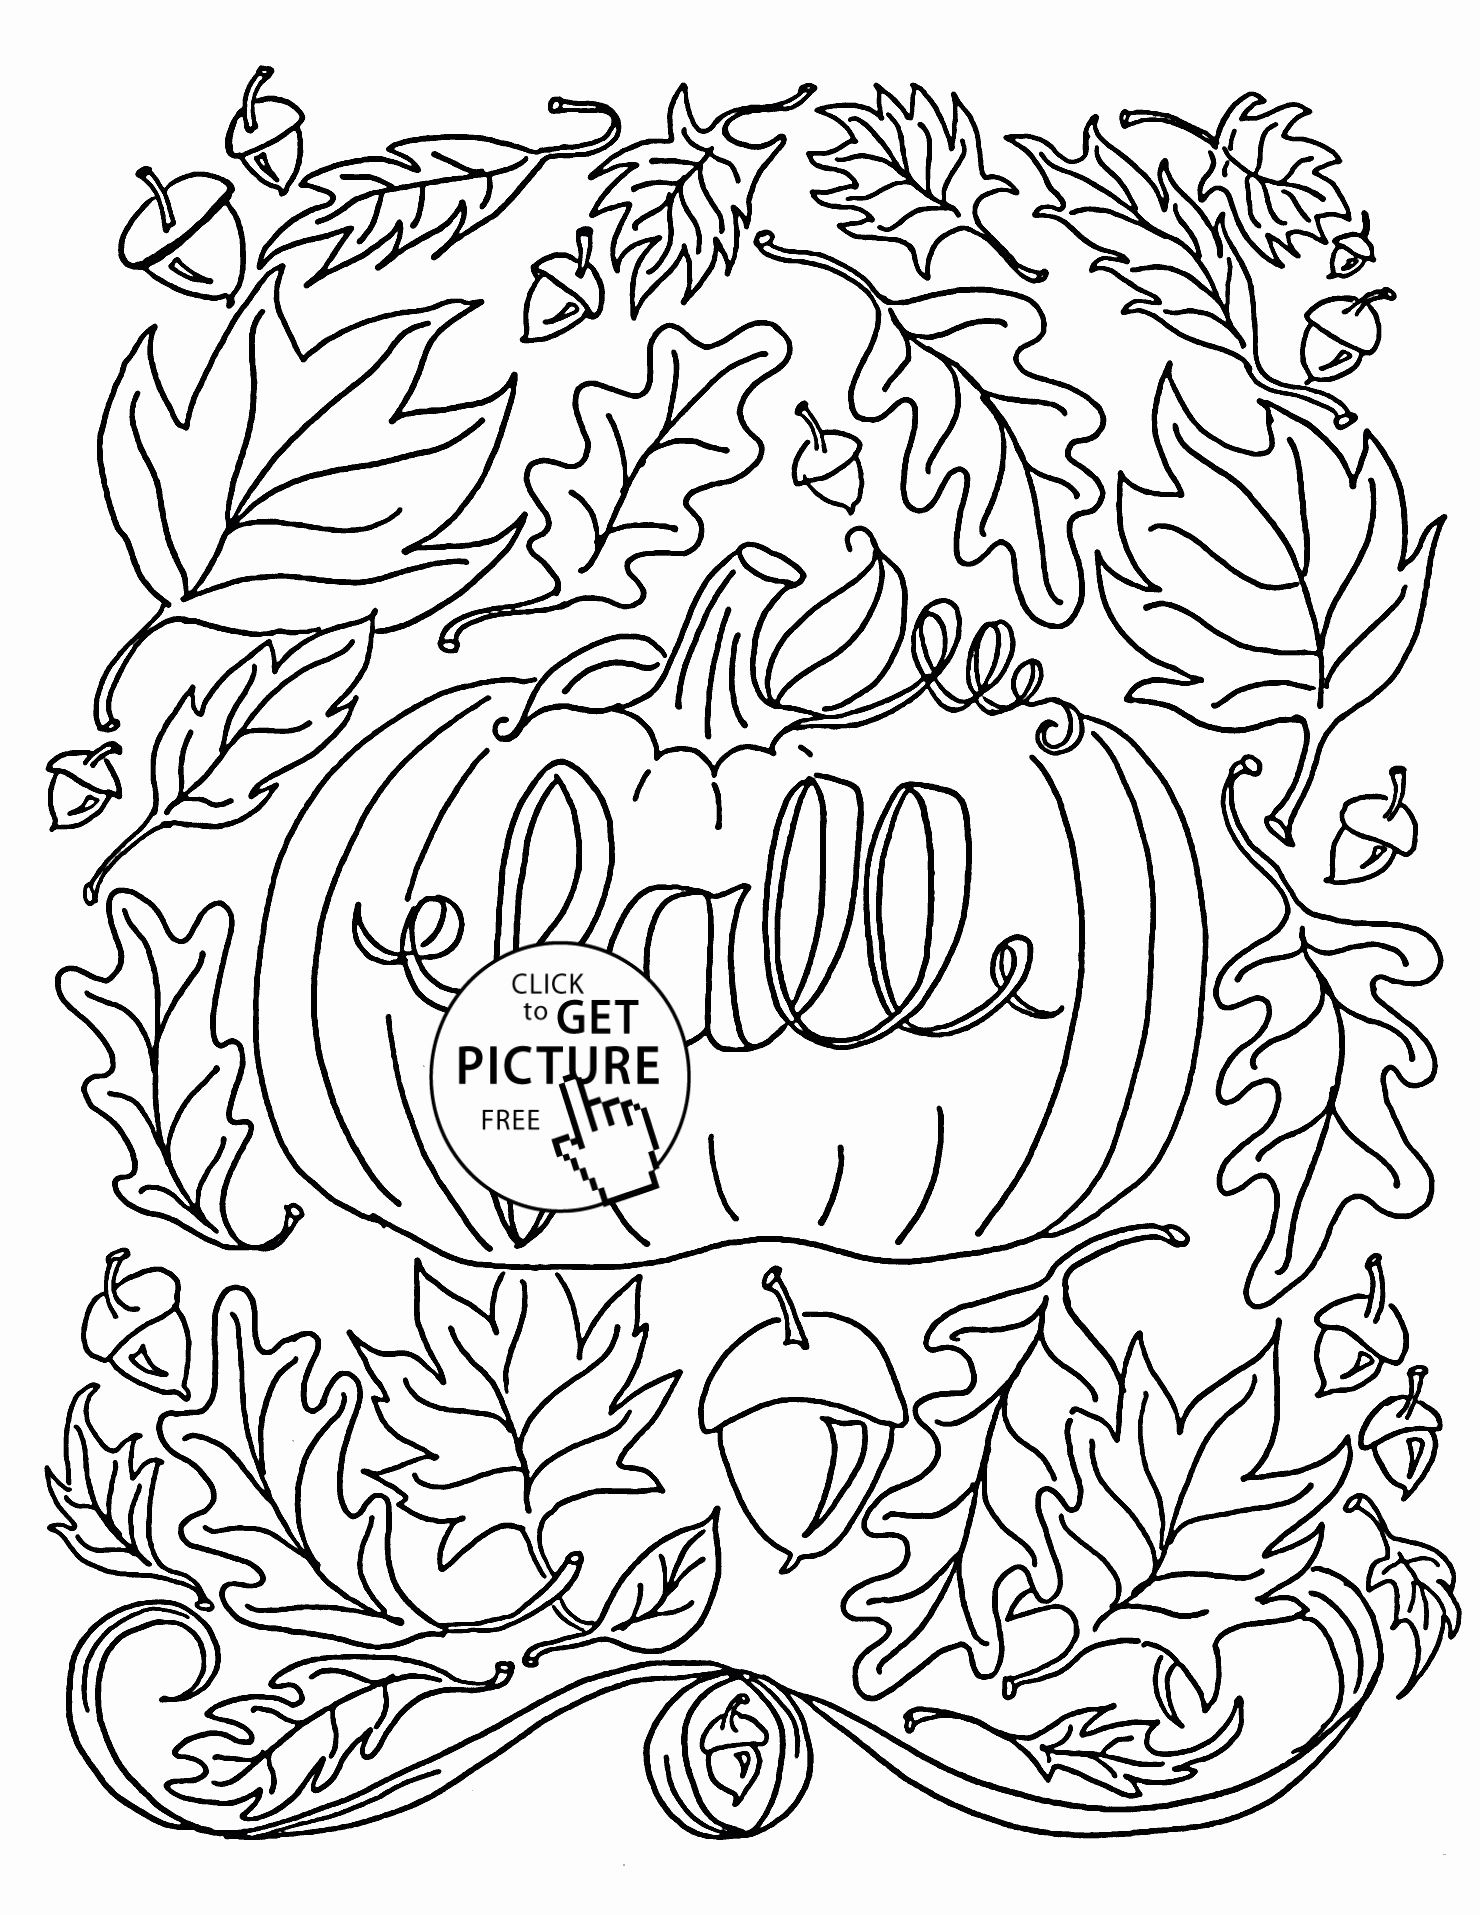 Super Mario Coloring Page Awesome Collection Bowser Coloring Pages ...